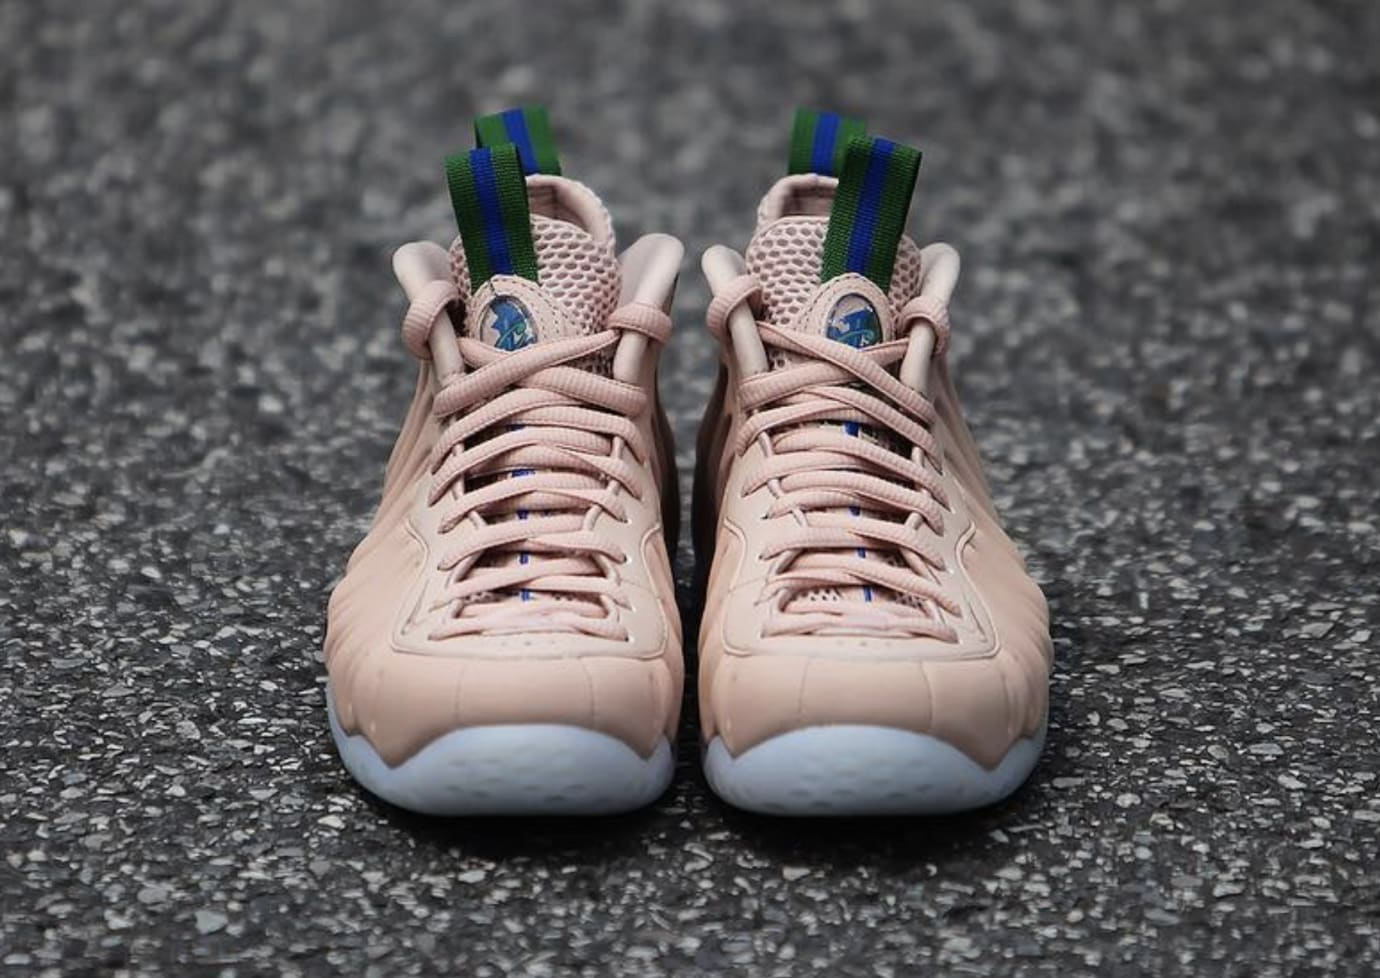 0d470d116081 Image via gc911 · WMNS Nike Air Foamposite One  Particle Beige  AA3693-200  (Front)